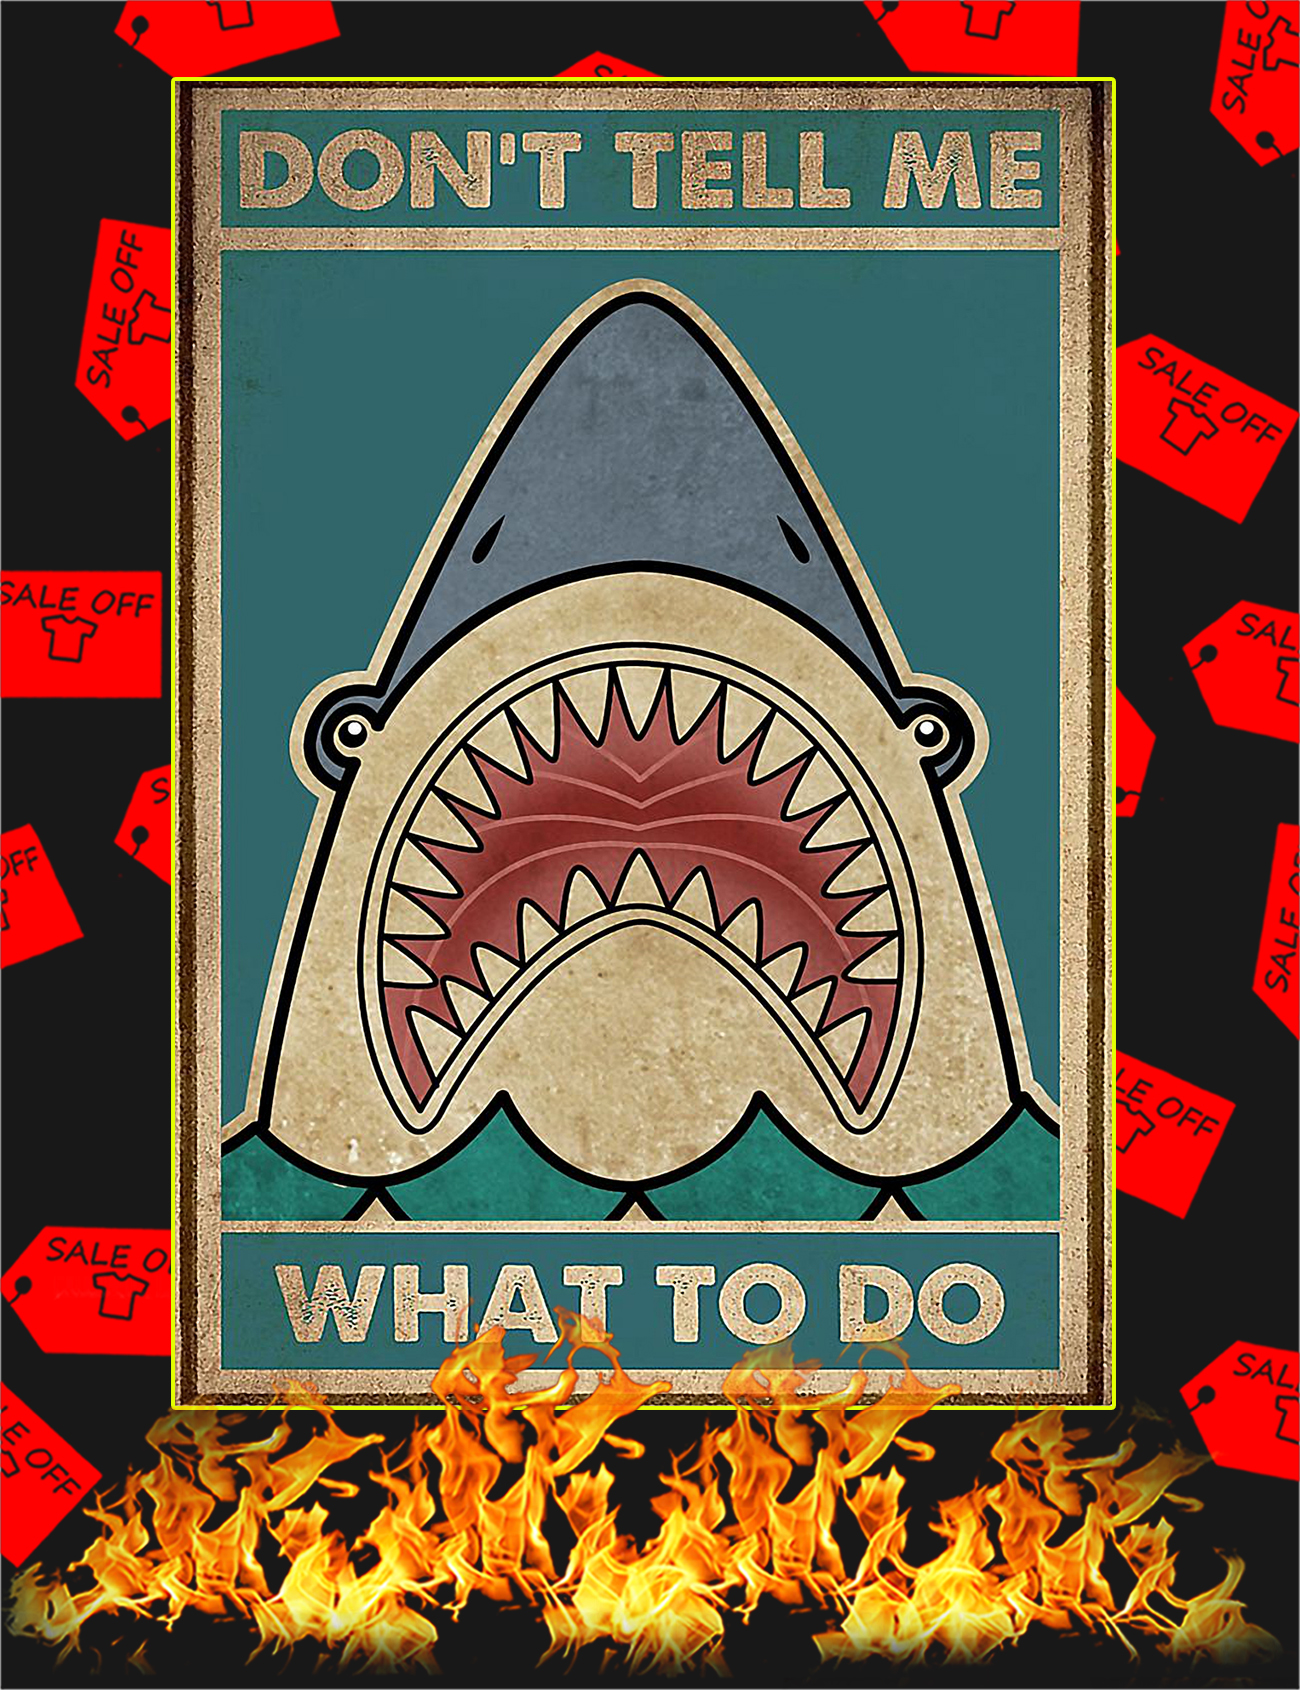 Shark Don't tell me what to do poster